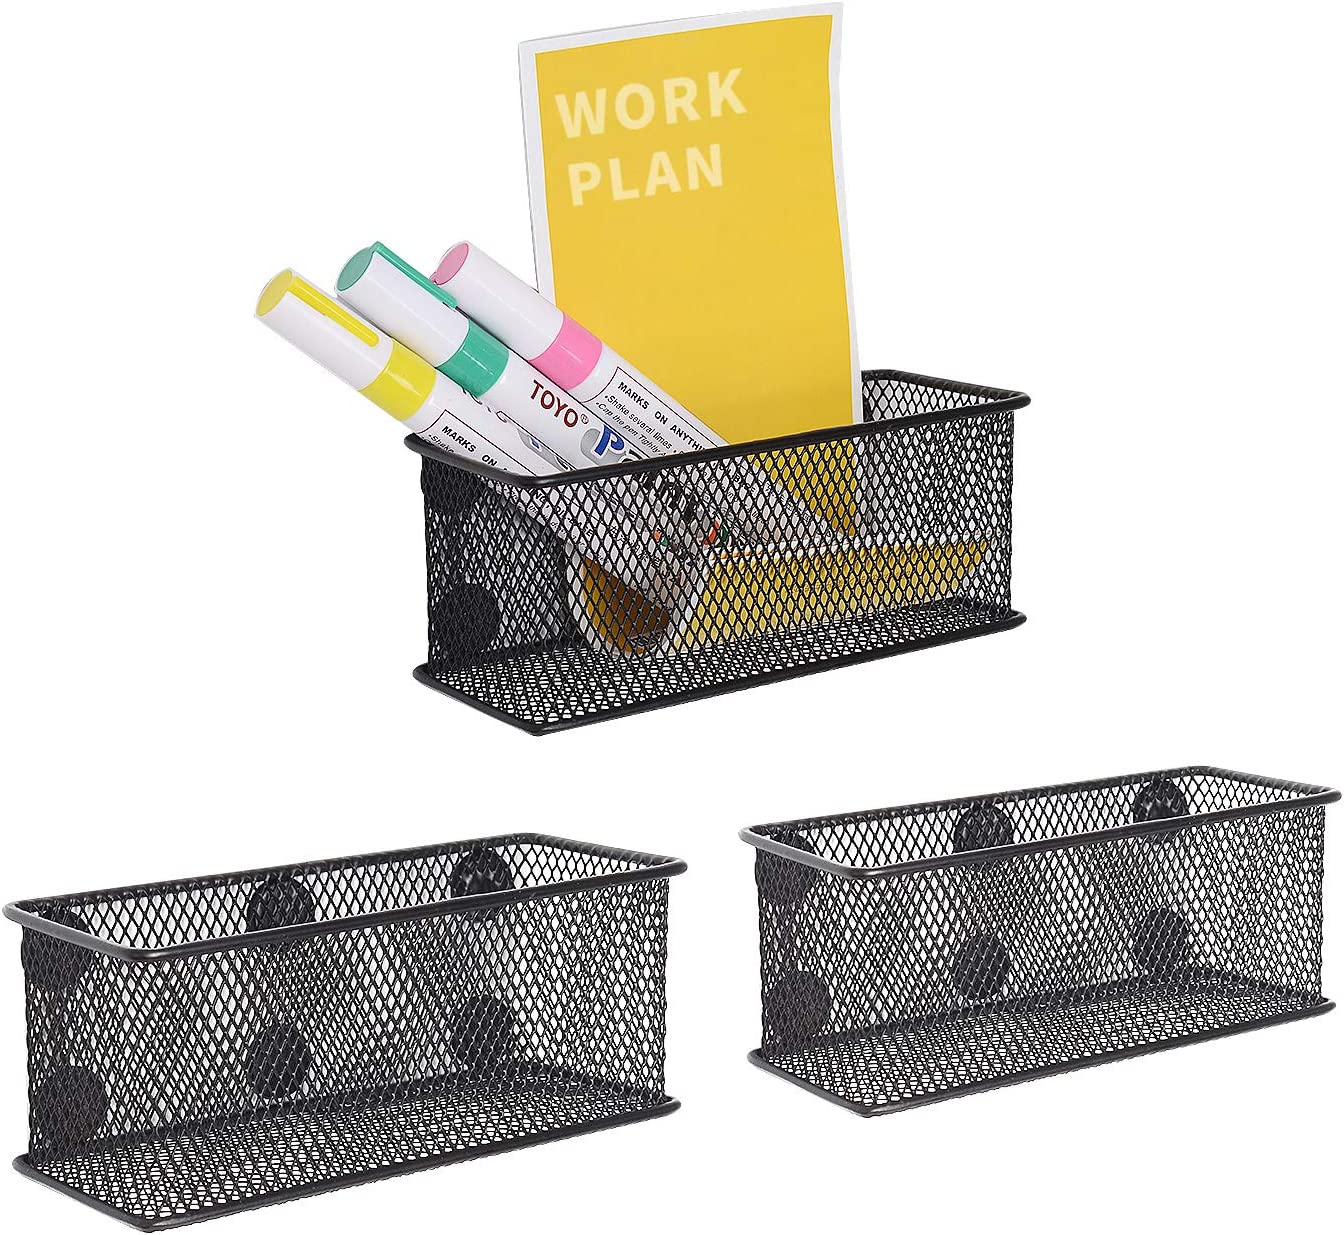 Wire Mesh Magnetic Organizer Set of 3 - Magnetic Storage Baskets Storage Tray with Strong Magnets Keep Your Office Clutter-Free Perfect for Whiteboard, Refrigerator,Black